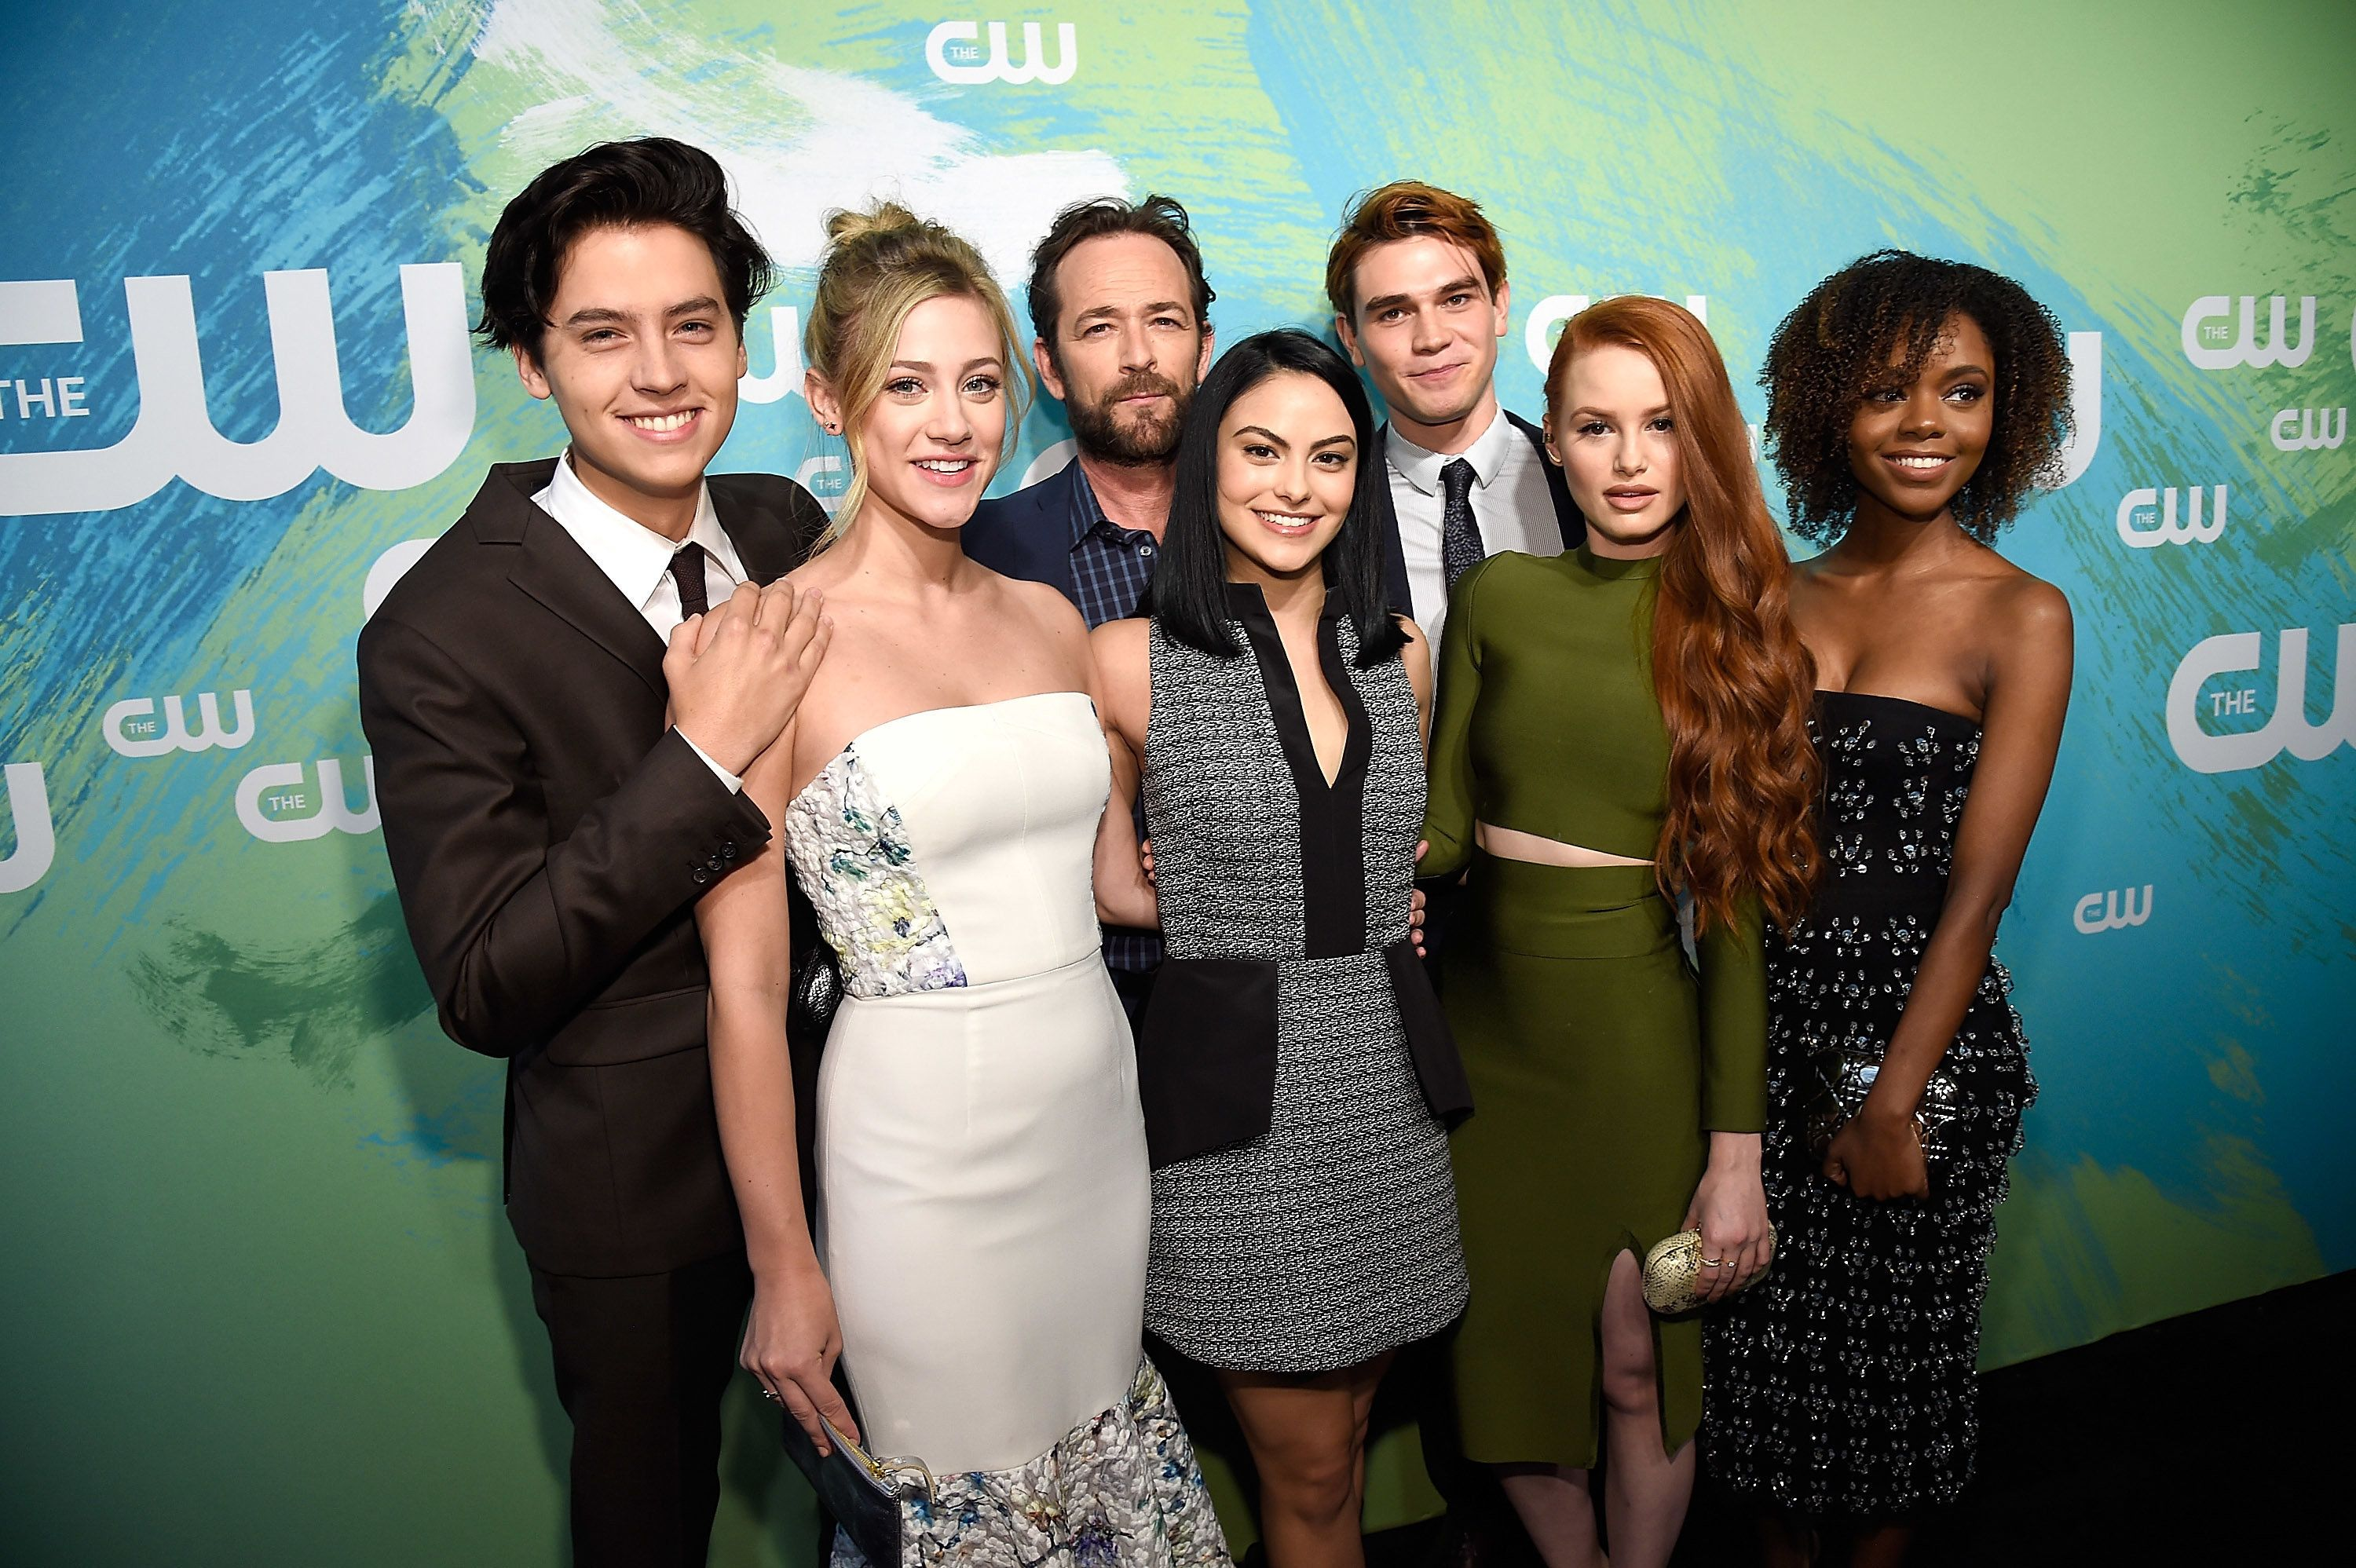 NEW YORK, NY - MAY 19:  Cole Sprouse, Lili Reinhart, Luke Perry, Camilla Mendes,  KJ Apa, Madelaine Petsch and Ashleigh Murray attend The CW Network's 2016 Upfront  at The London Hotel on May 19, 2016 in New York City.  (Photo by Kevin Mazur/Getty Images for The CW)